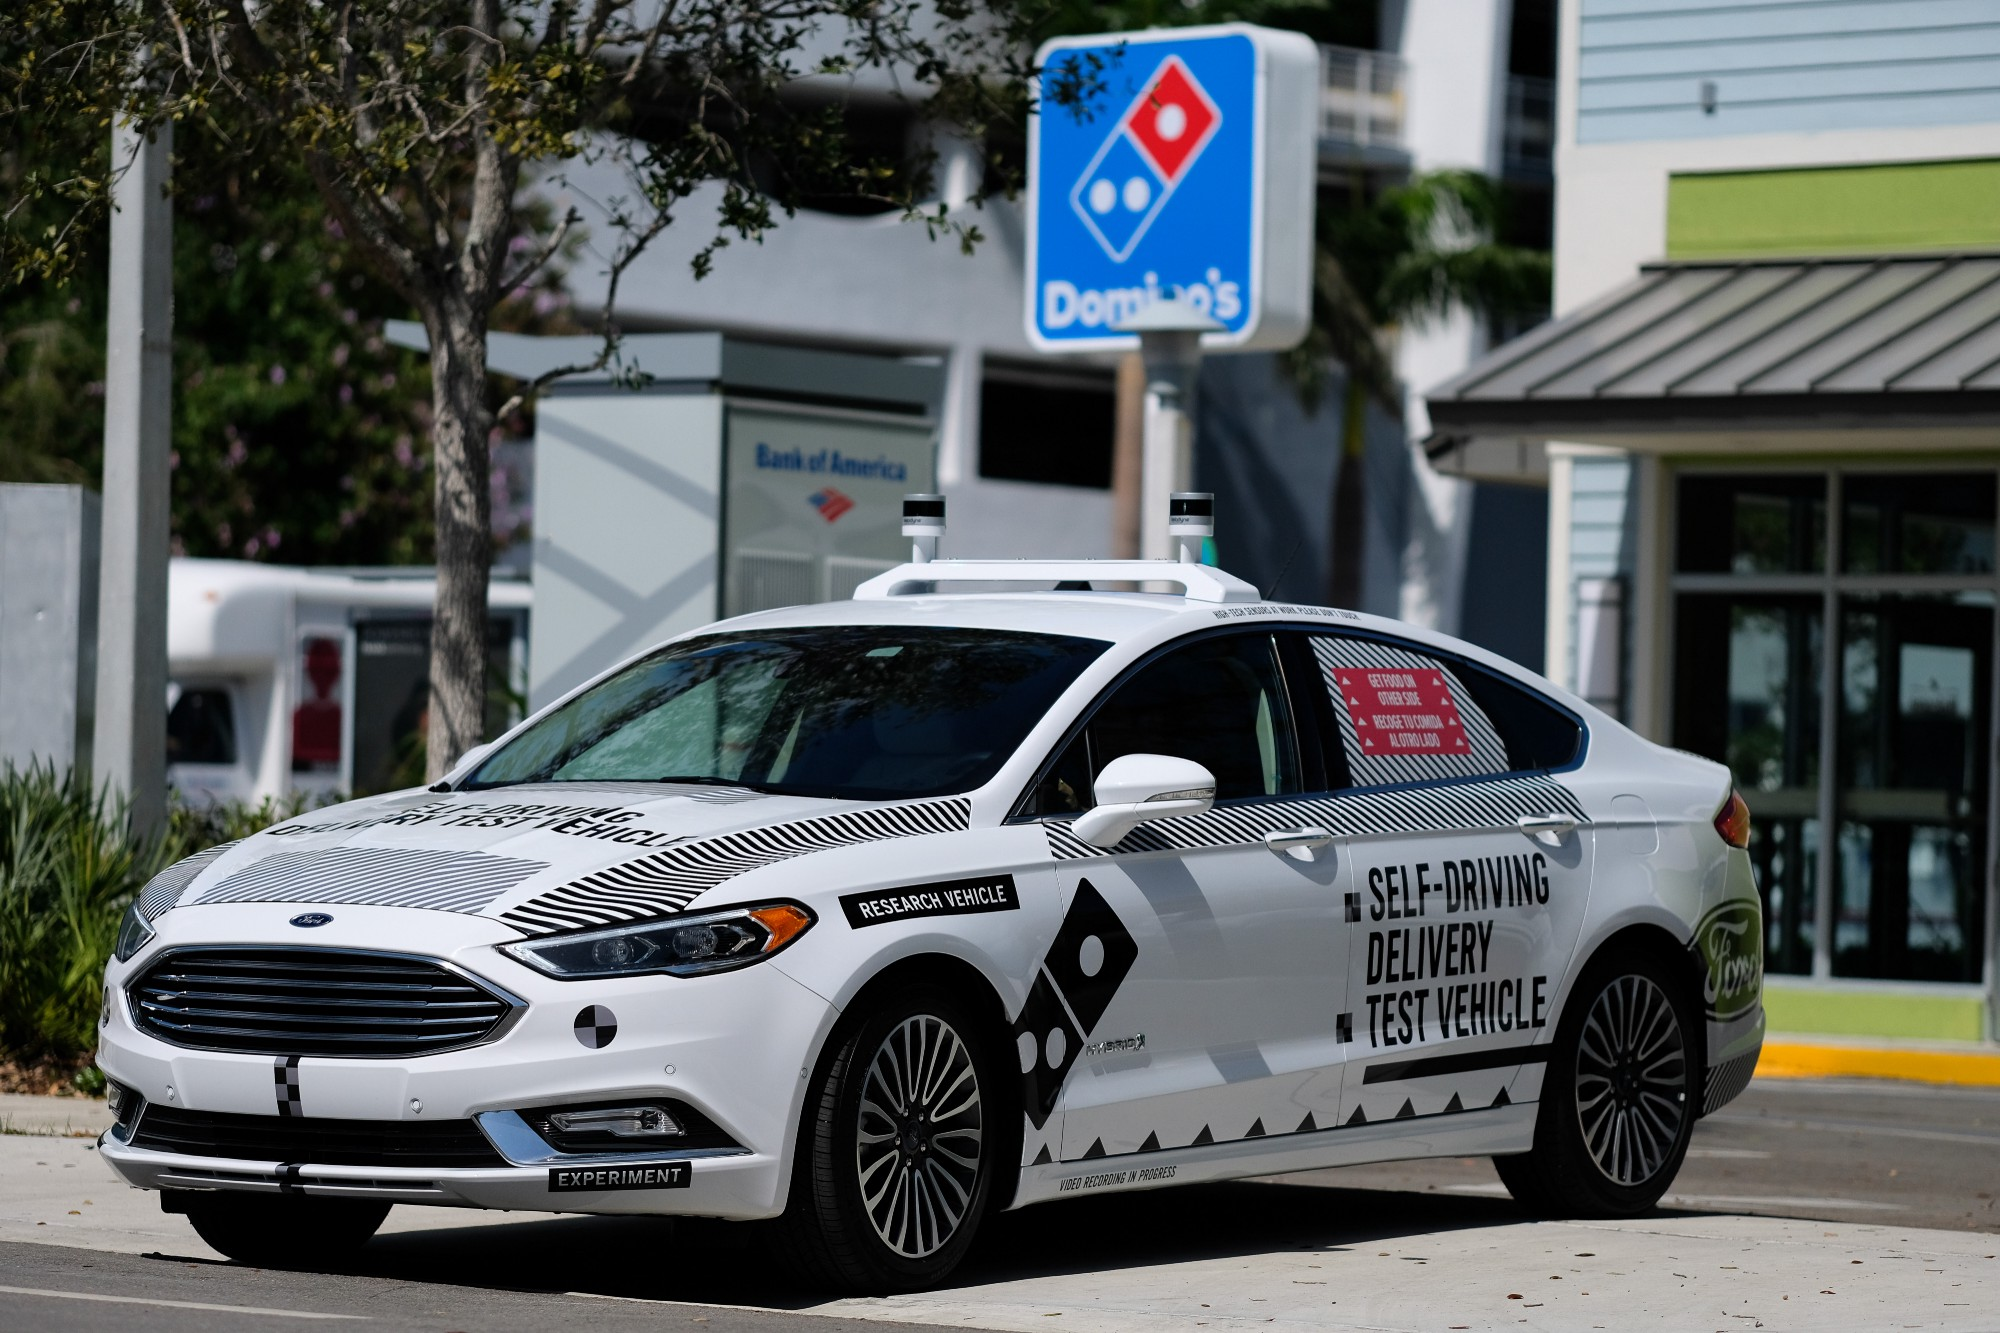 Ford partners with Domino's and Postmates on self-driving car project